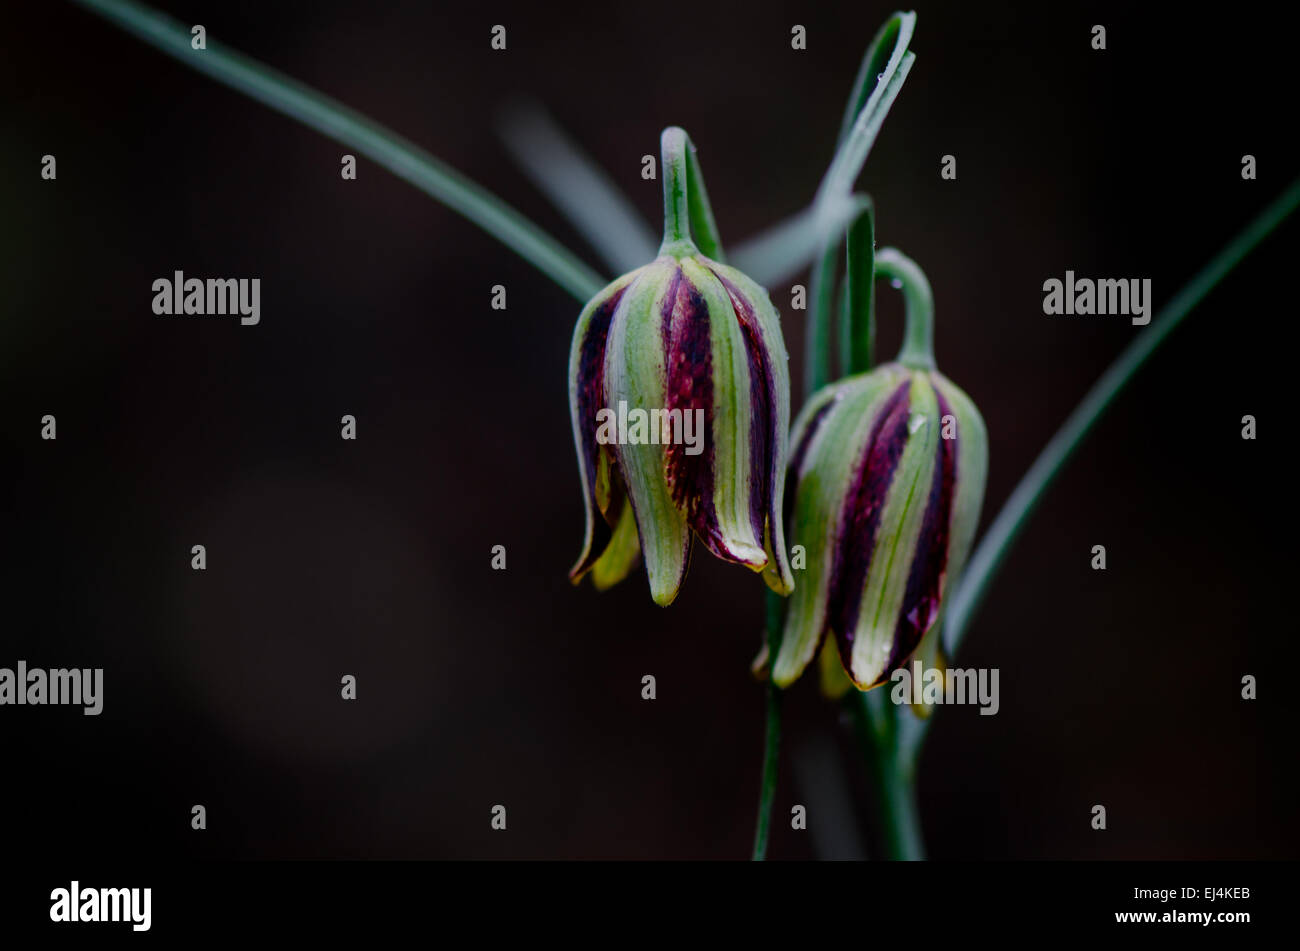 Fritillaria messanensis, Fritillaria gracilis, Andalusia, Spain. Stock Photo